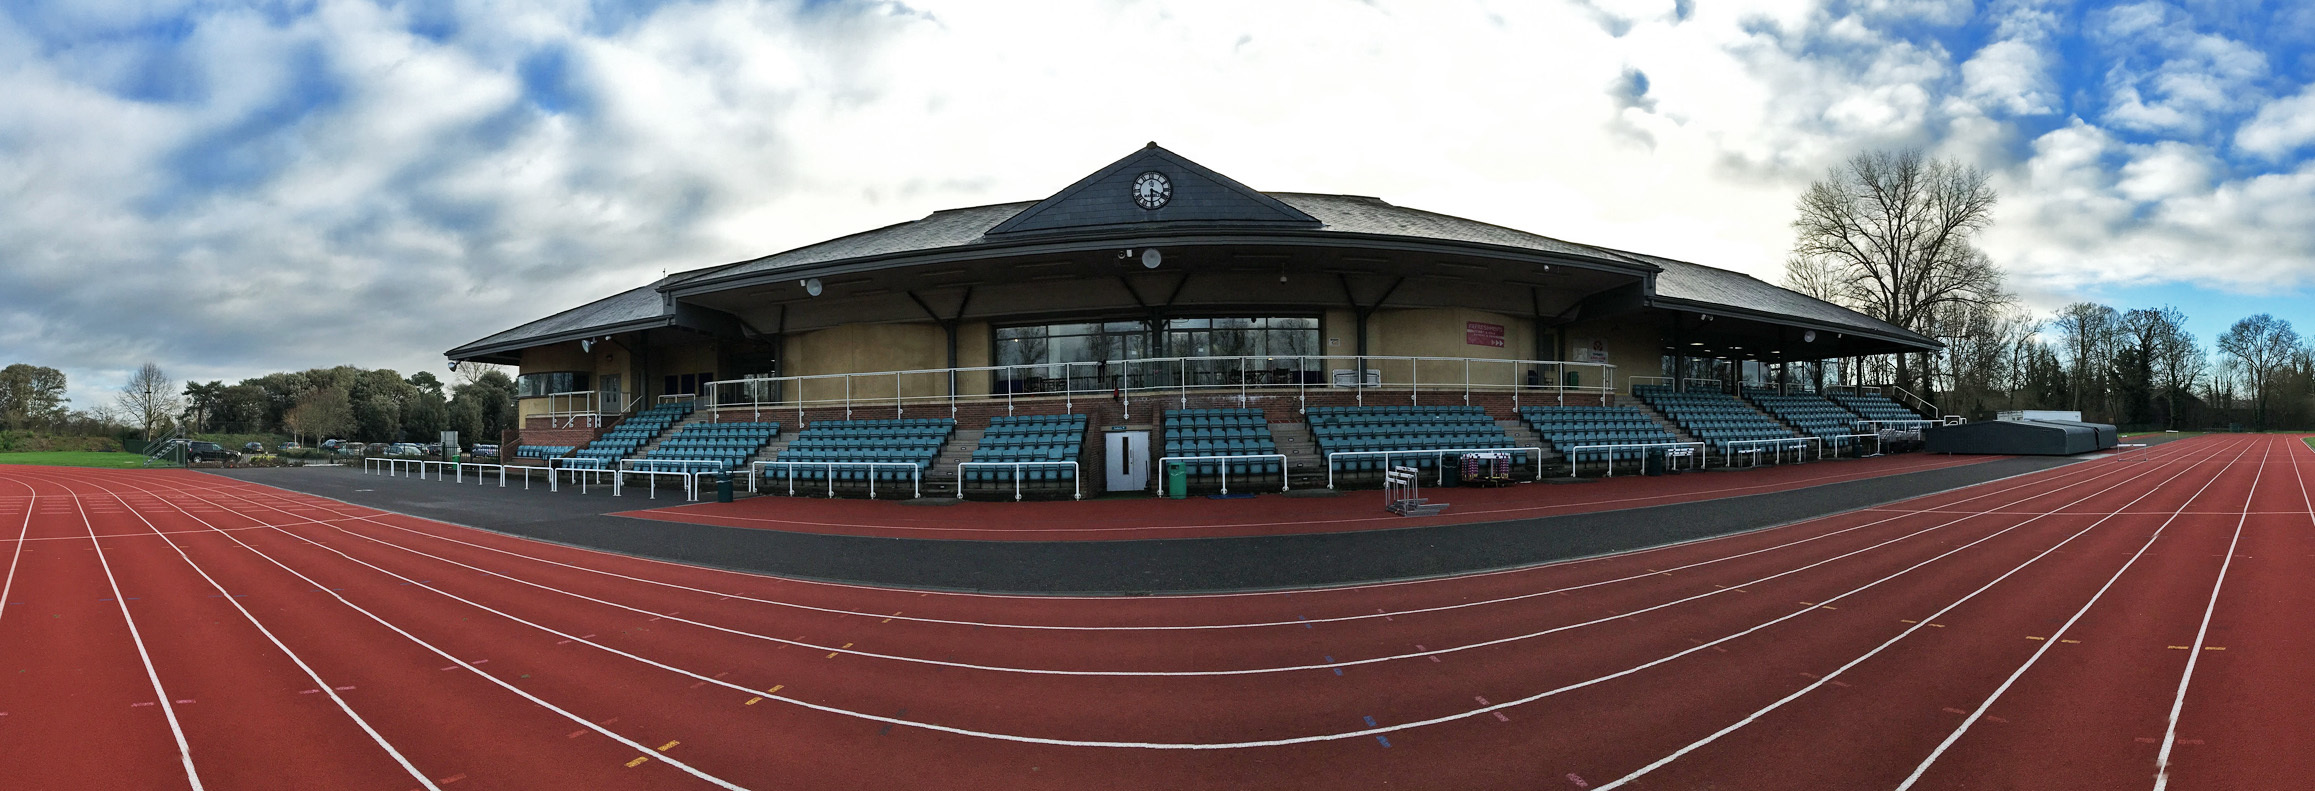 WSEH Athletics Club, based at the Thames Valley Athletics Centre in Eton (pictured), finished in fifth place in the British Athletics League Division One match in Swansea.